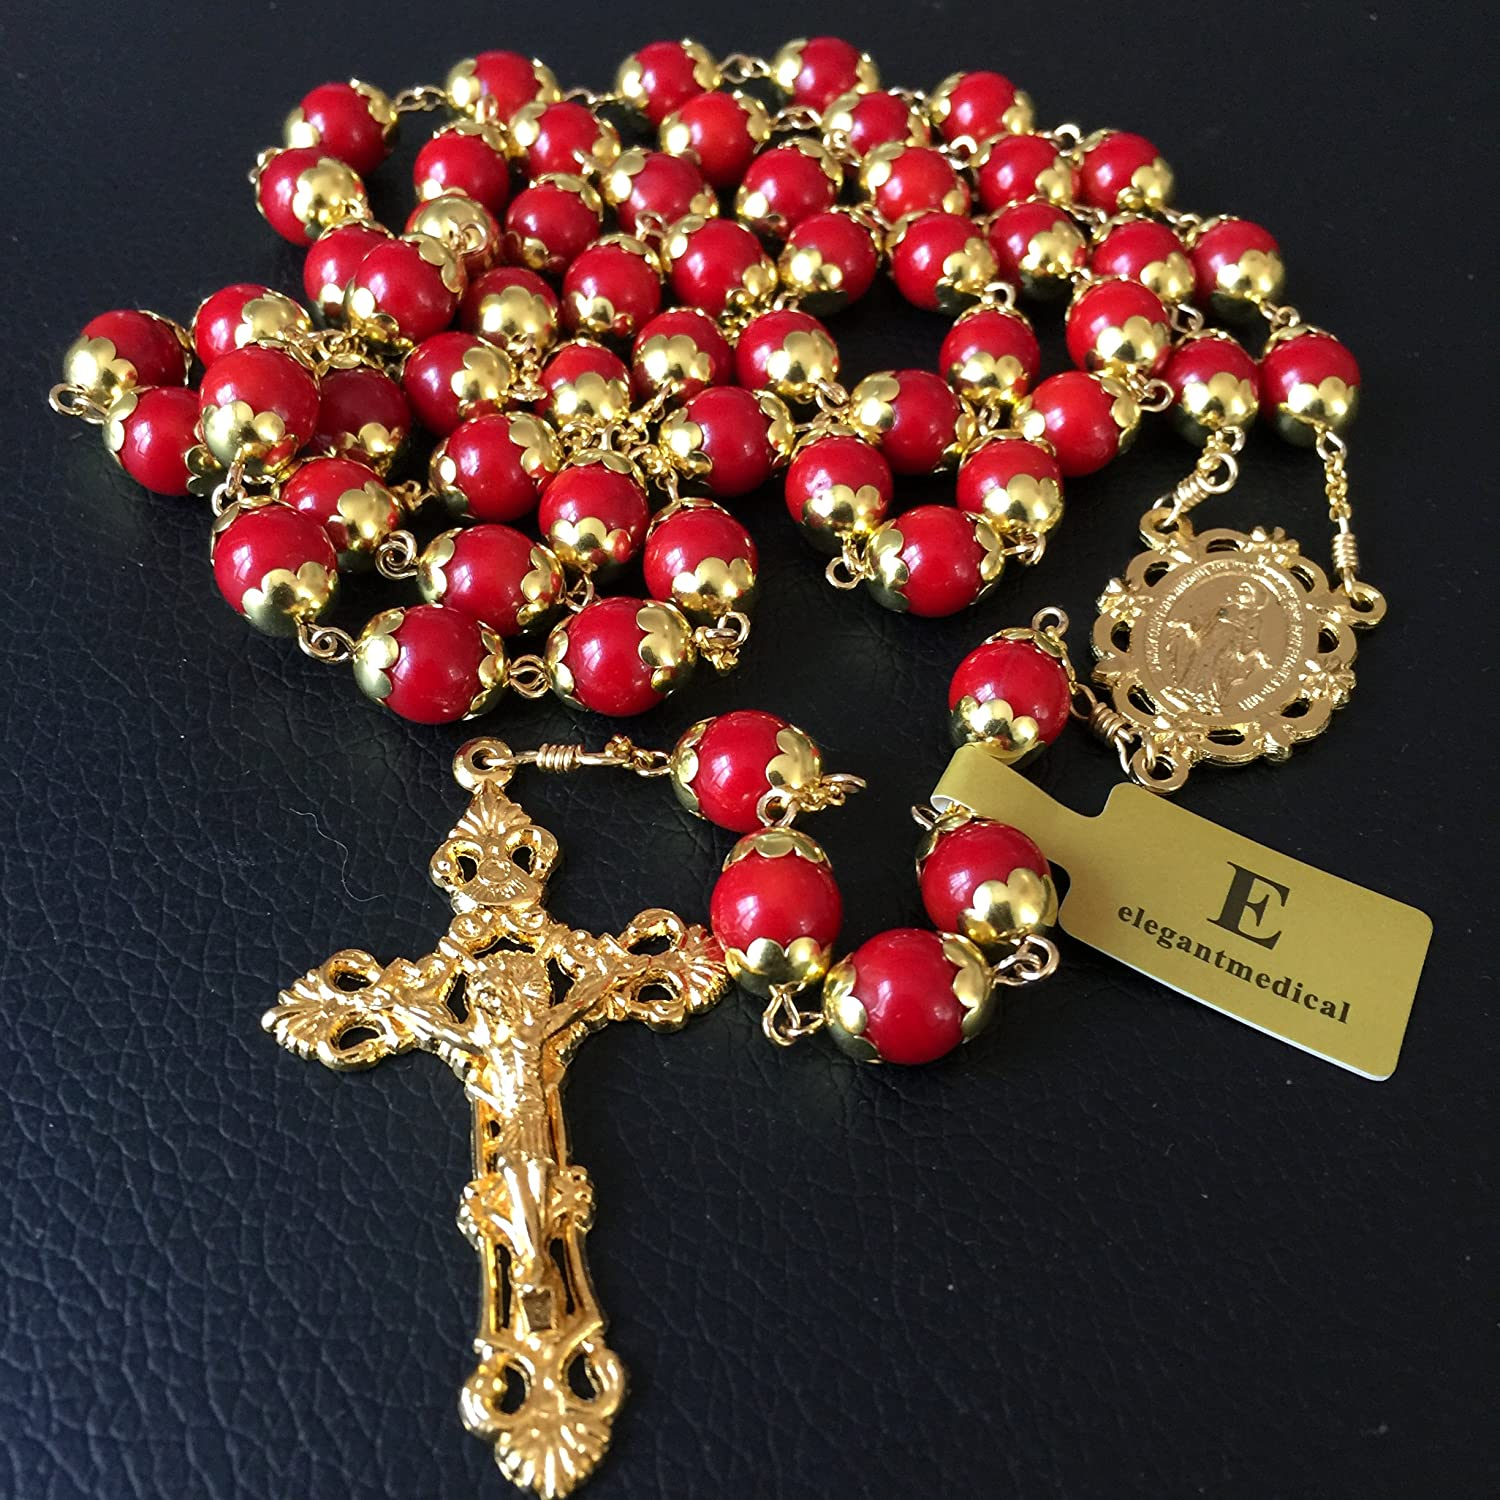 elegantmedical Handmade GOLG Red Coral Beads Catholic 5 Decade Rosary Necklace Cross Womens GIFTS